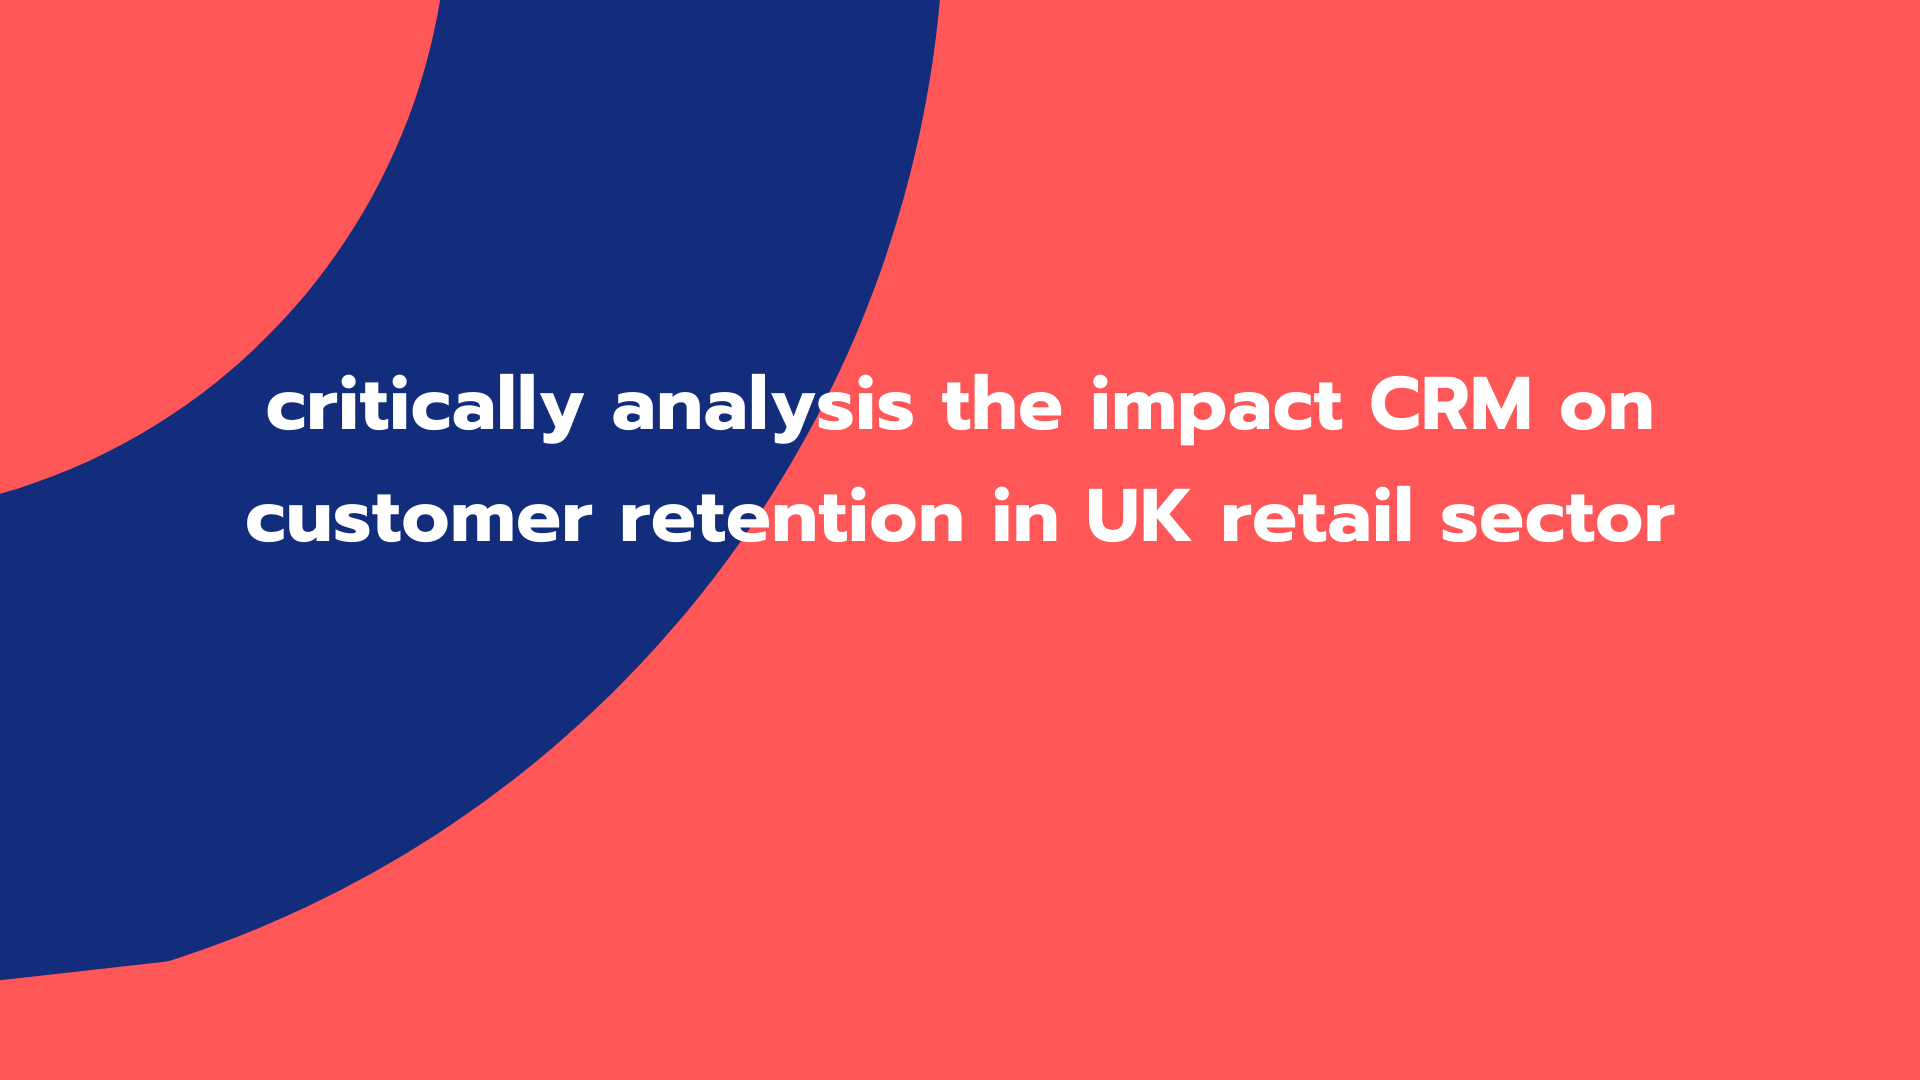 critically analysis the impact CRM on customer retention in UK retail sector